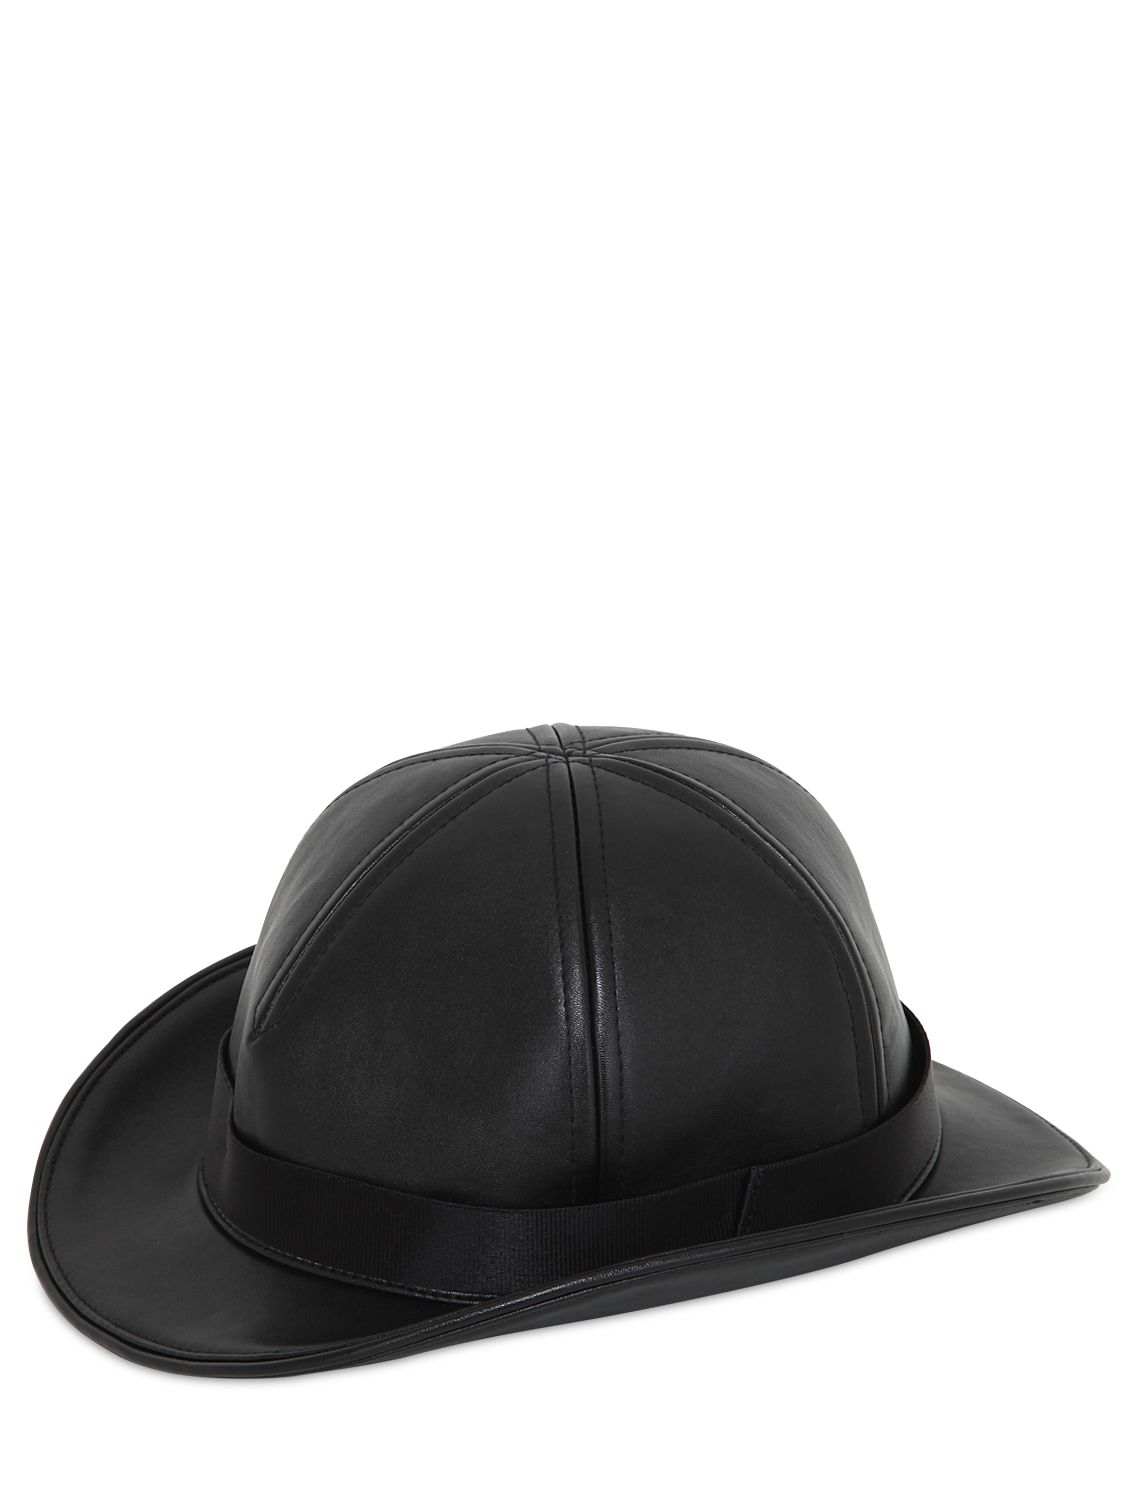 81f05d6a8f2c5e KTZ Faux Leather Bowler Hat in Black for Men - Lyst